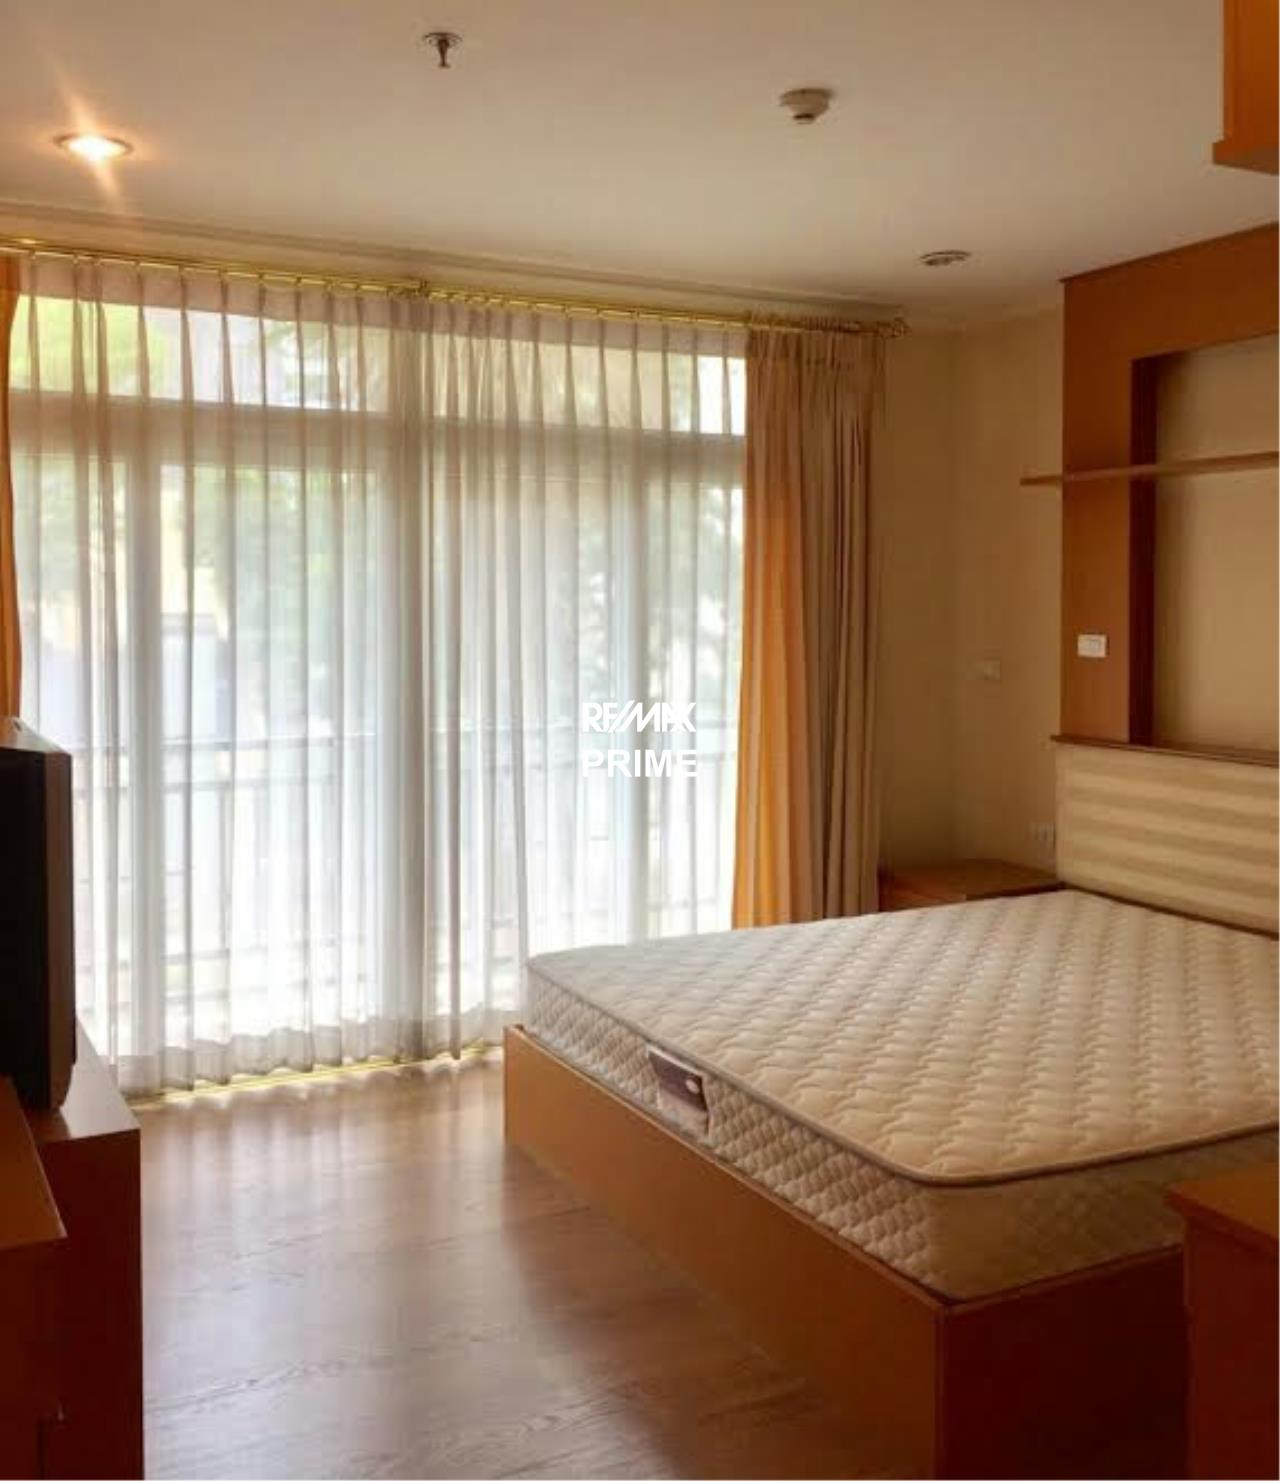 RE/MAX PRIME Agency's For Sale Wattana Suites 4